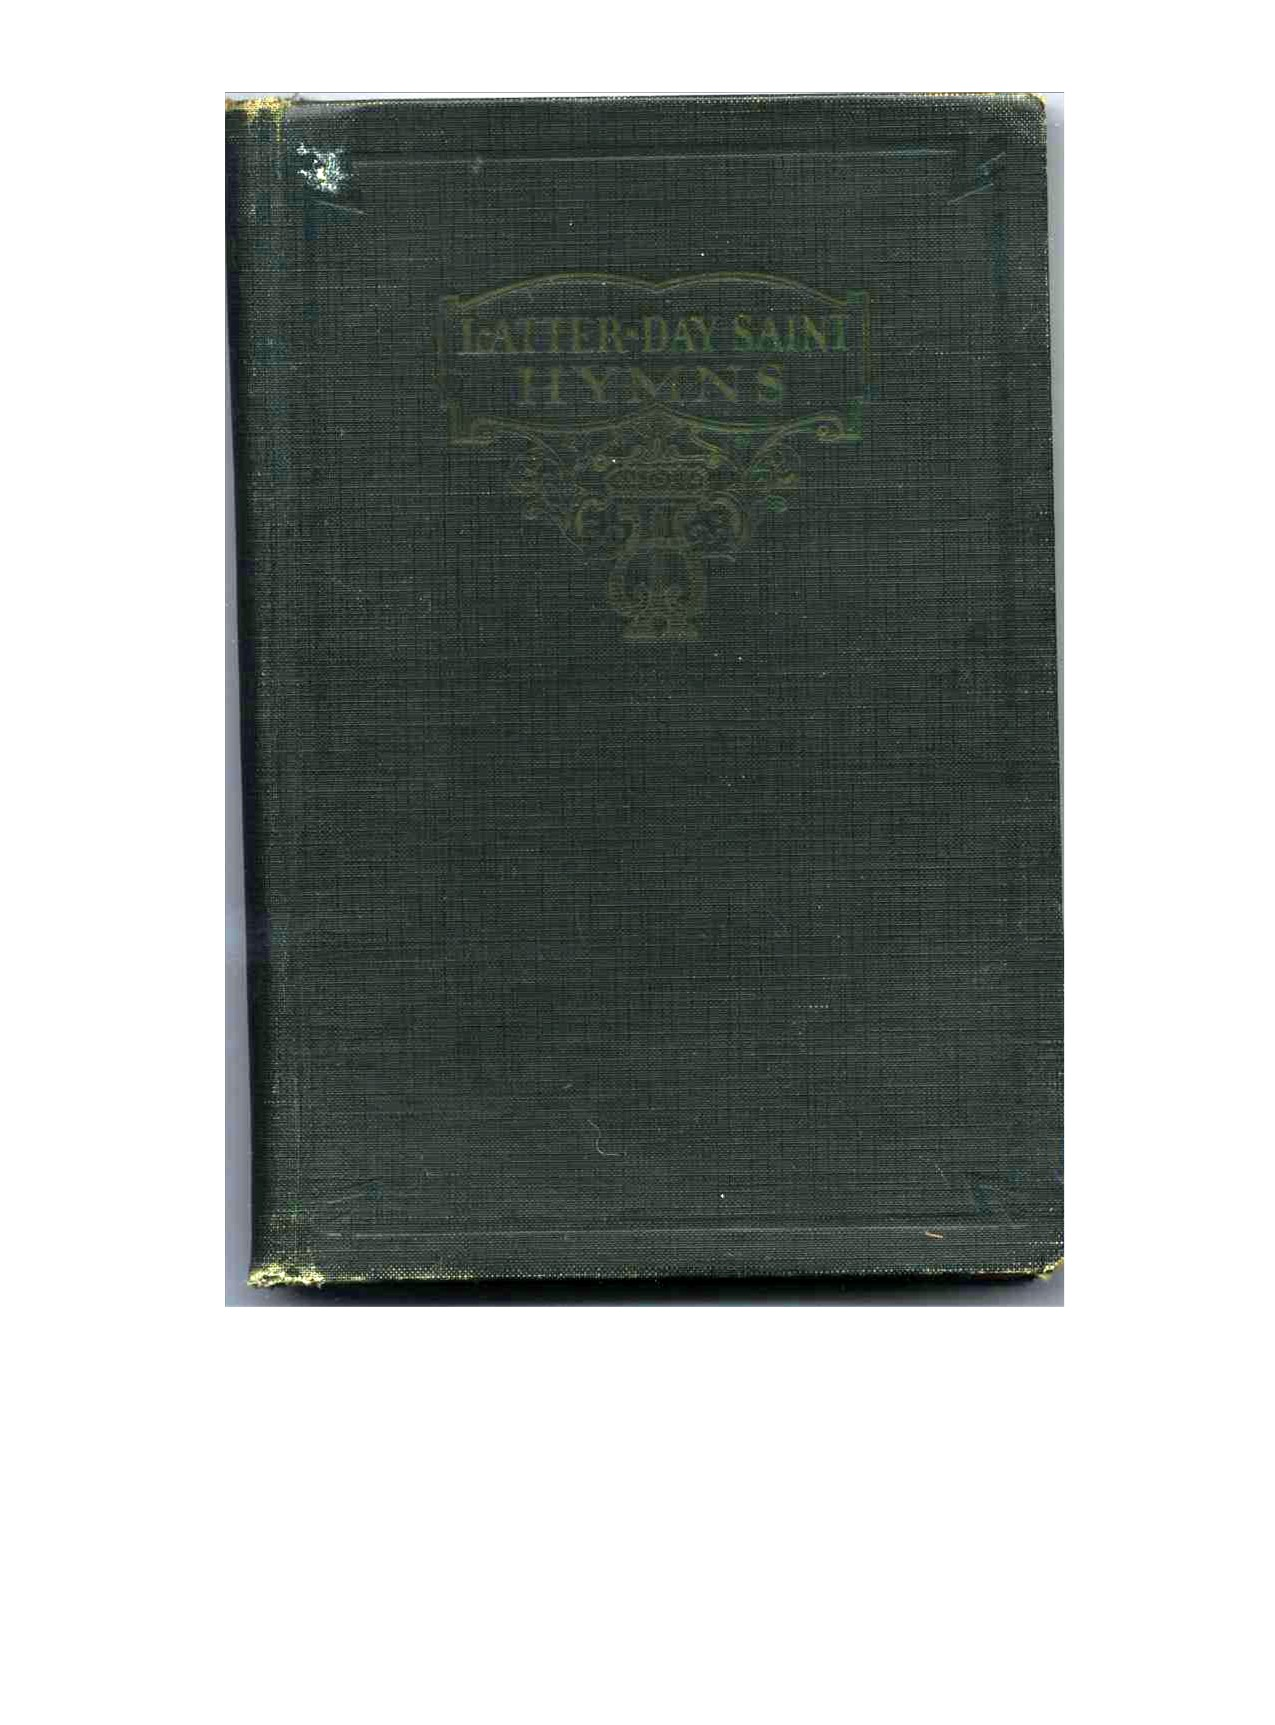 Blue Hymns LDS Mormon Song Book Collectors Item Lost Hymn 70 Out of Print 1979